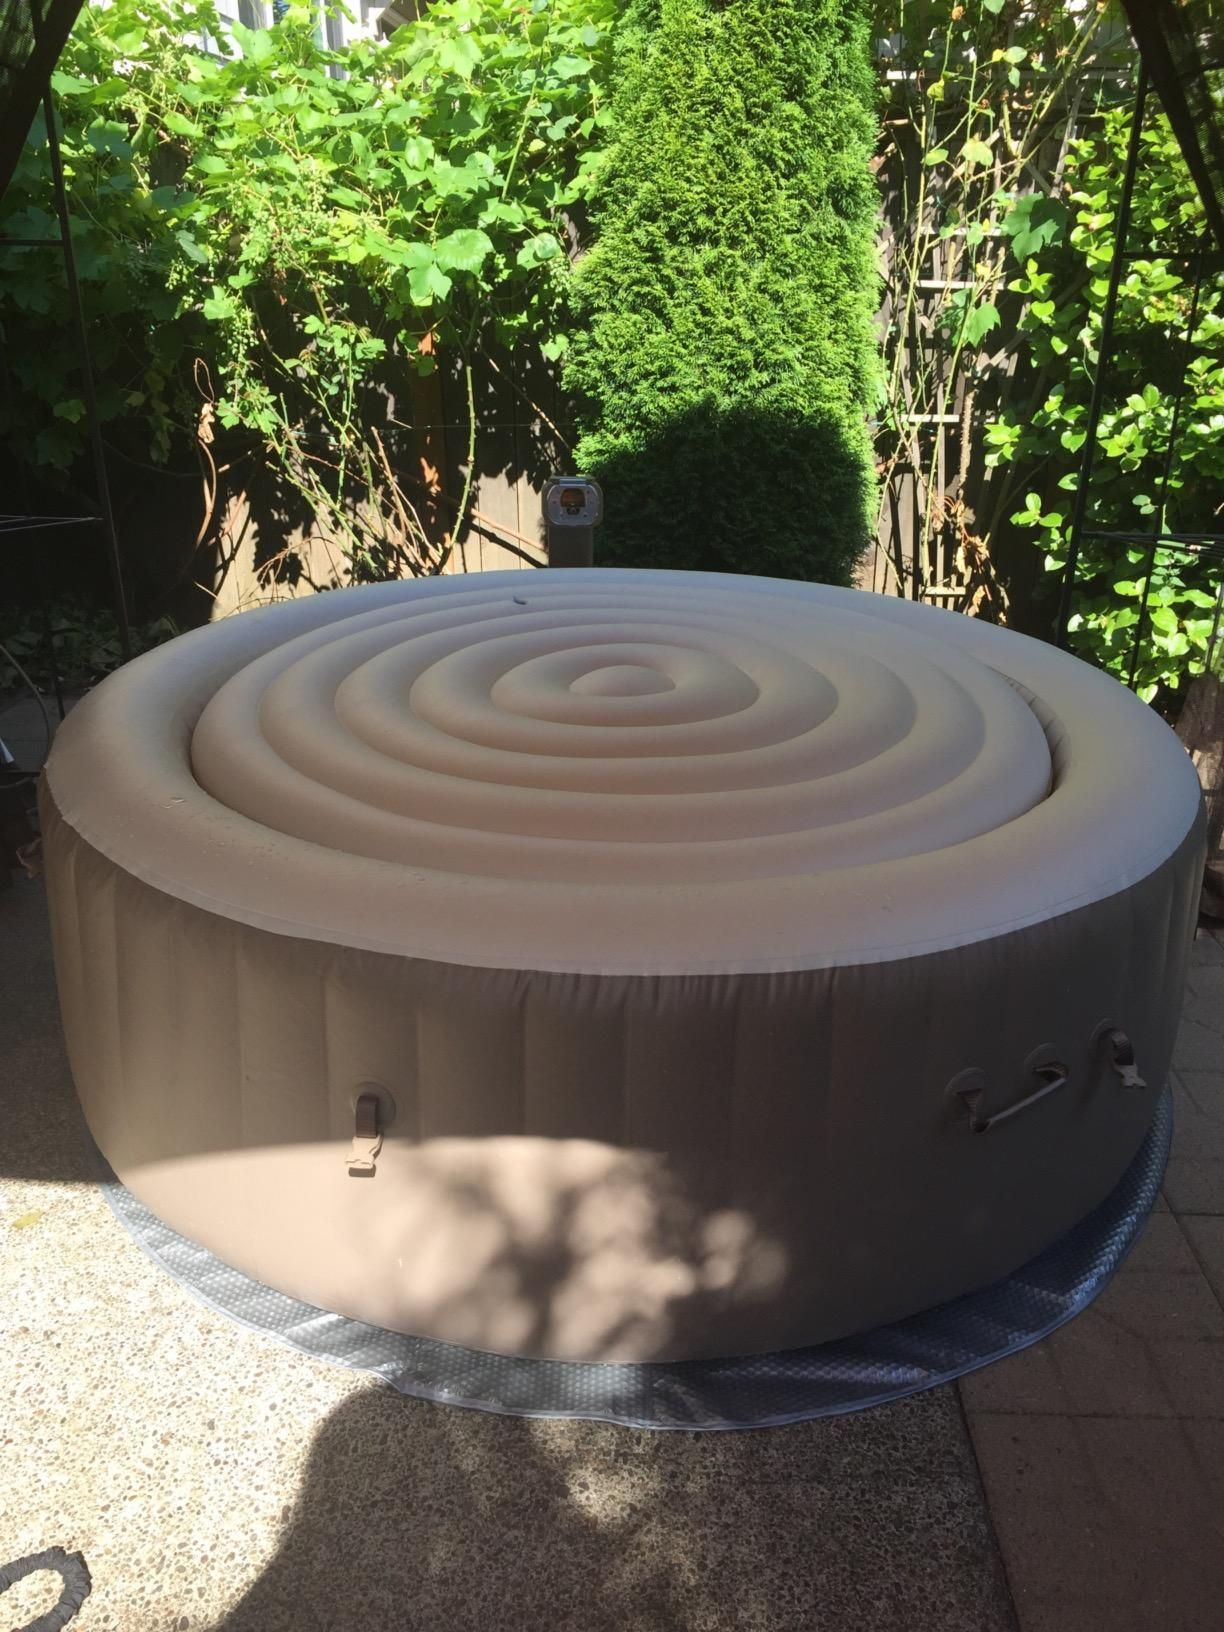 10 Best Inflatable Hot Tub Reviews In 2020 Best Inflatable Hot